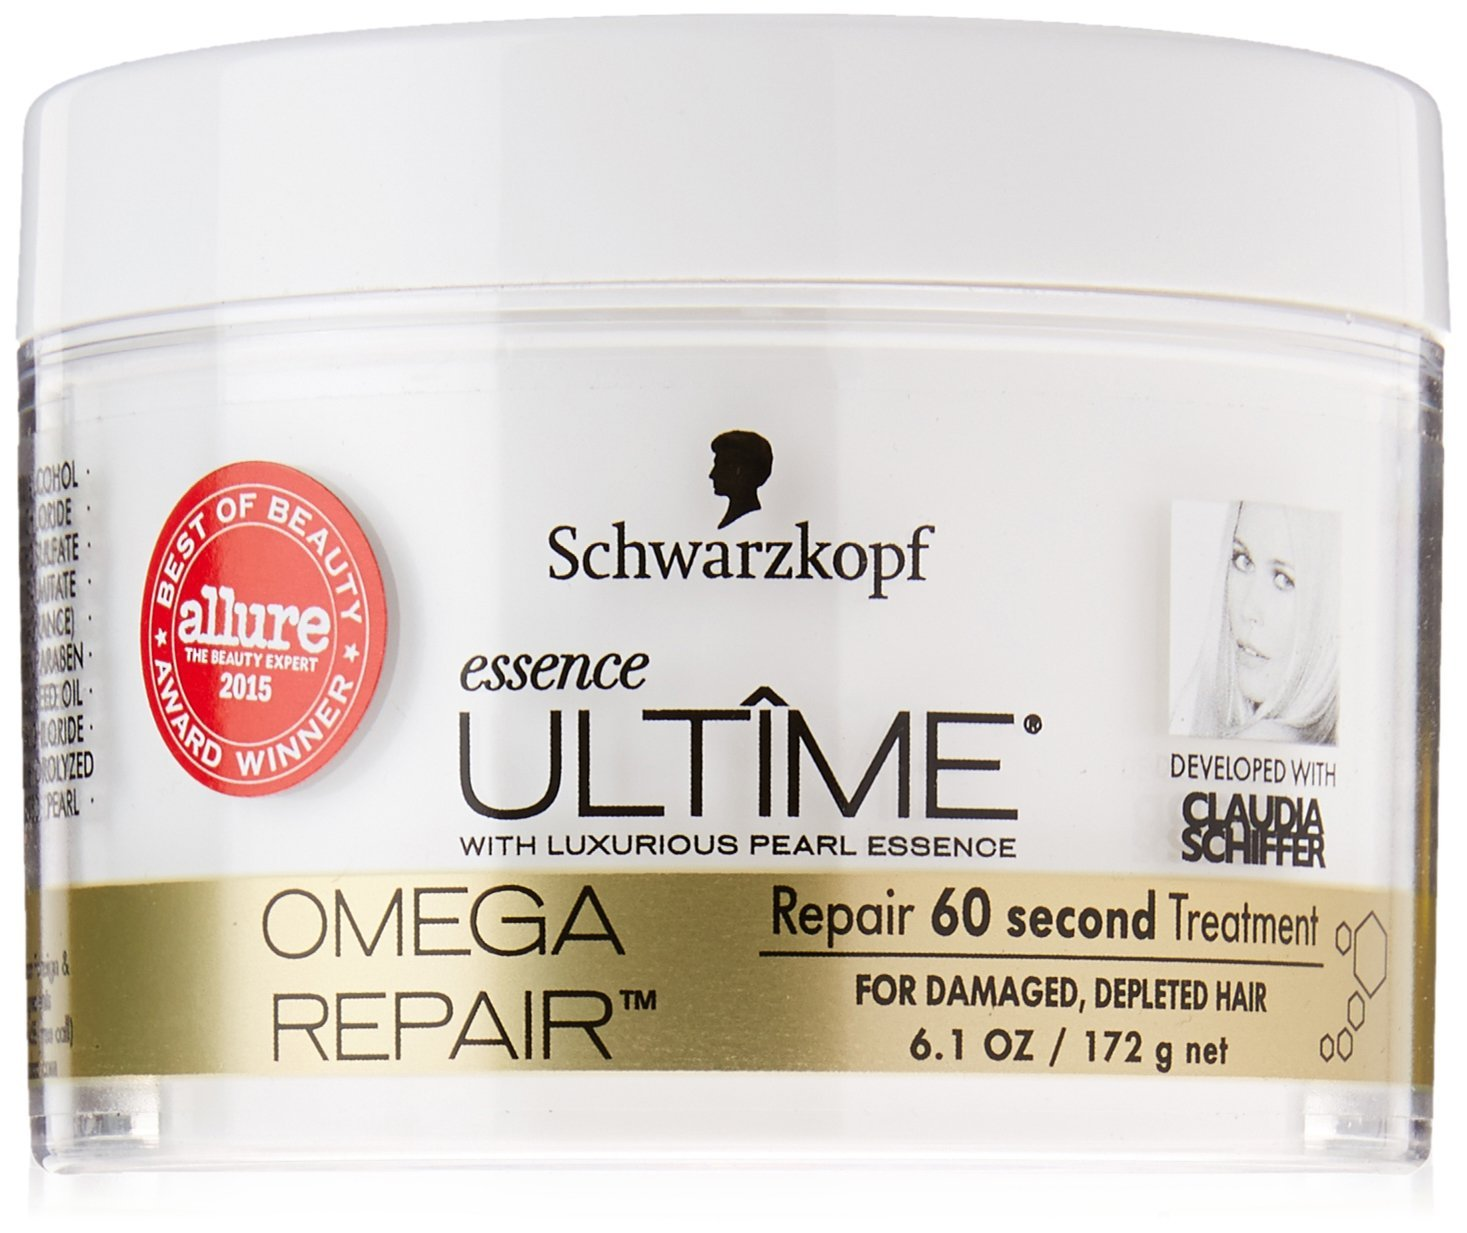 Schwarzkopf Essence Ultime Omega Repair, 60 Second Treatment, 6.1 Ounce